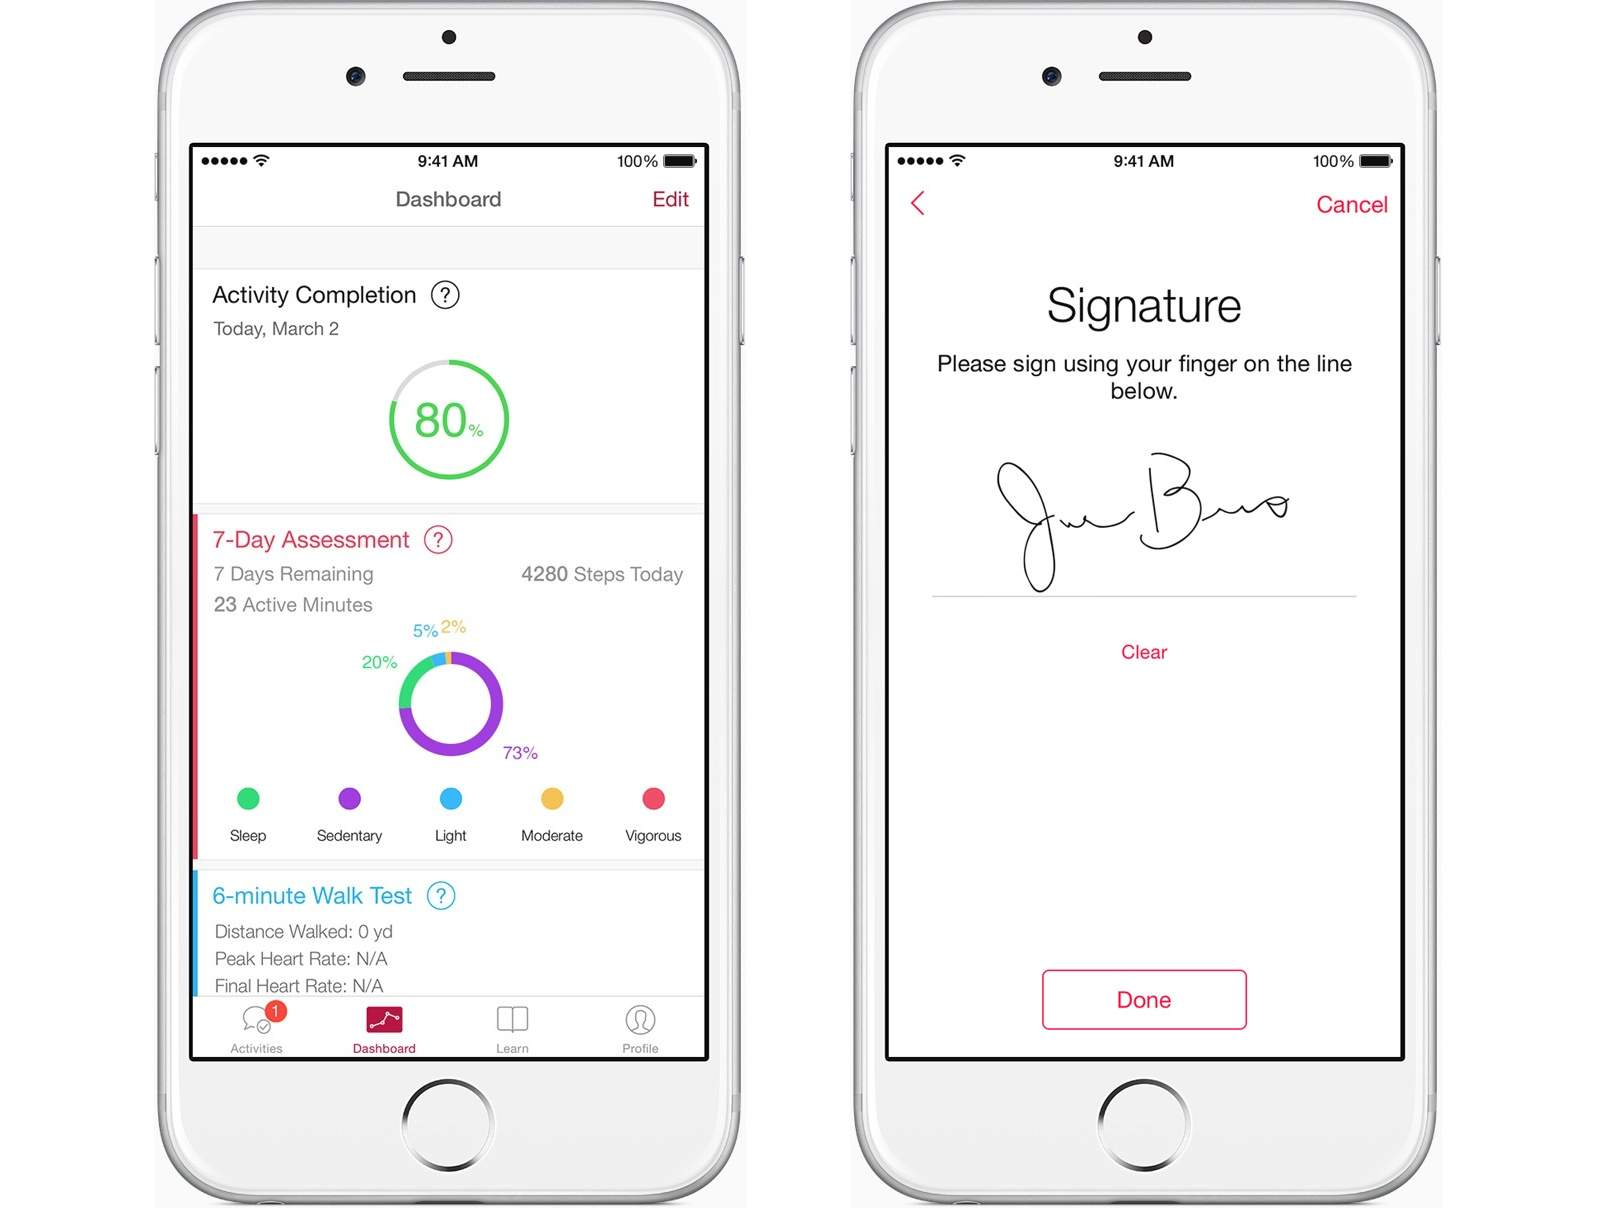 ResearchKit is expanding beyond the U.S.